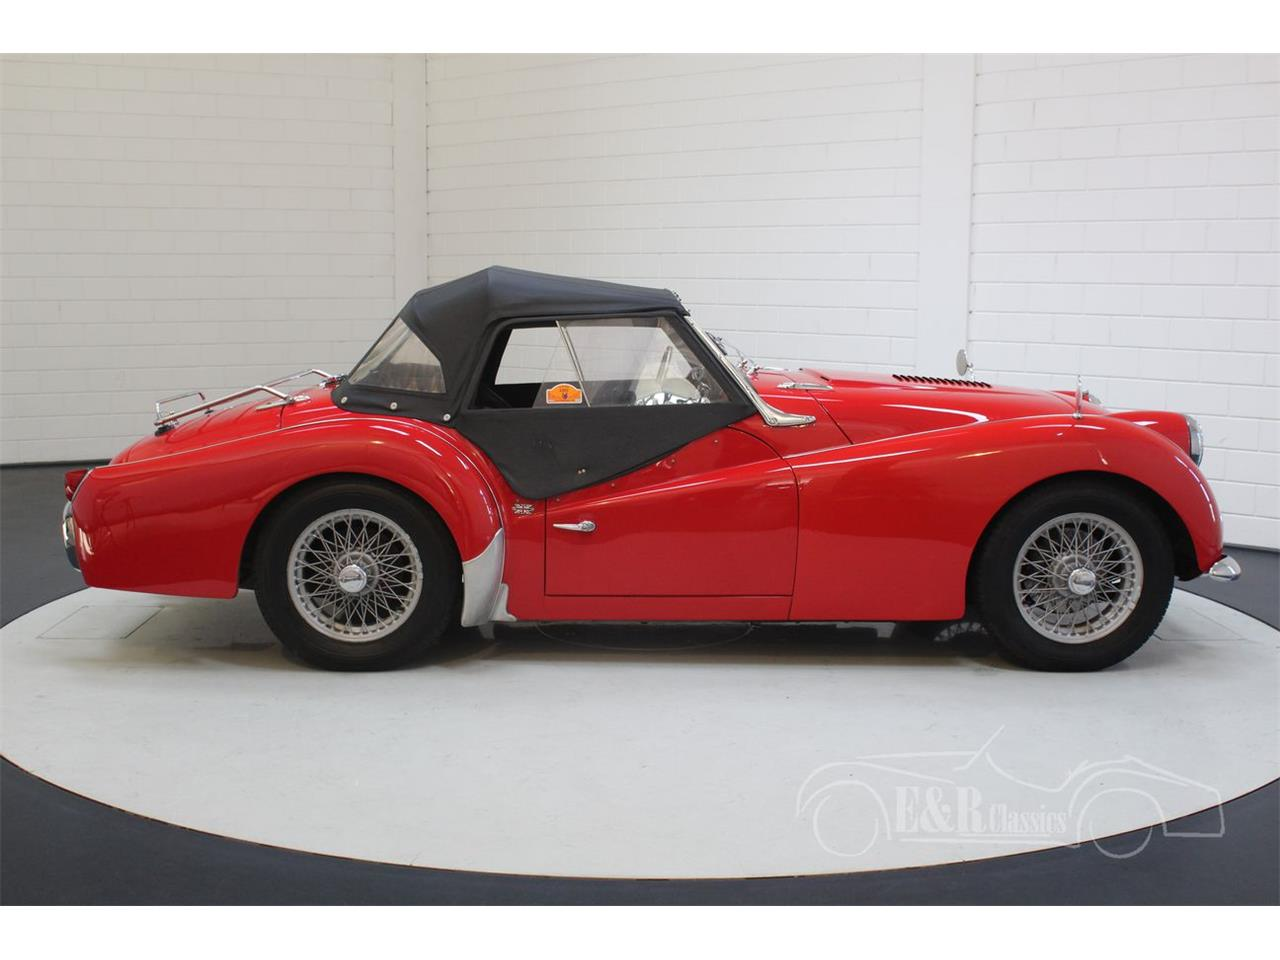 Large Picture of Classic '60 TR3A located in Waalwijk Noord-Brabant - $41,800.00 - PLXB